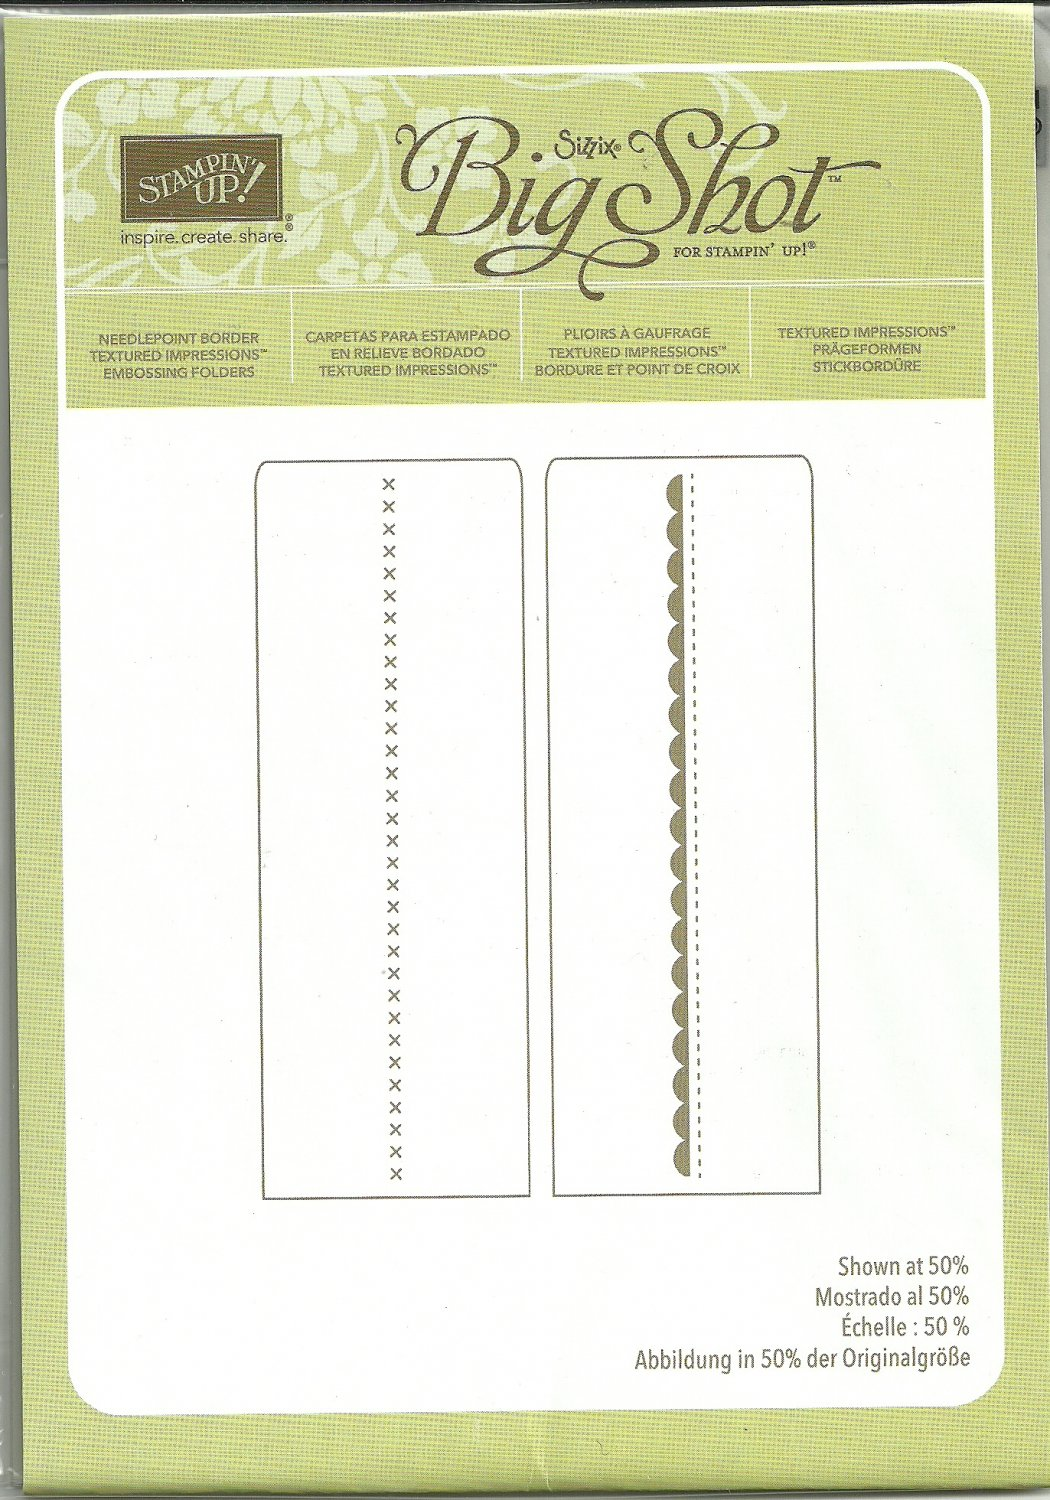 Needlepoint Border Embossing Folder Sizzix Big Shot